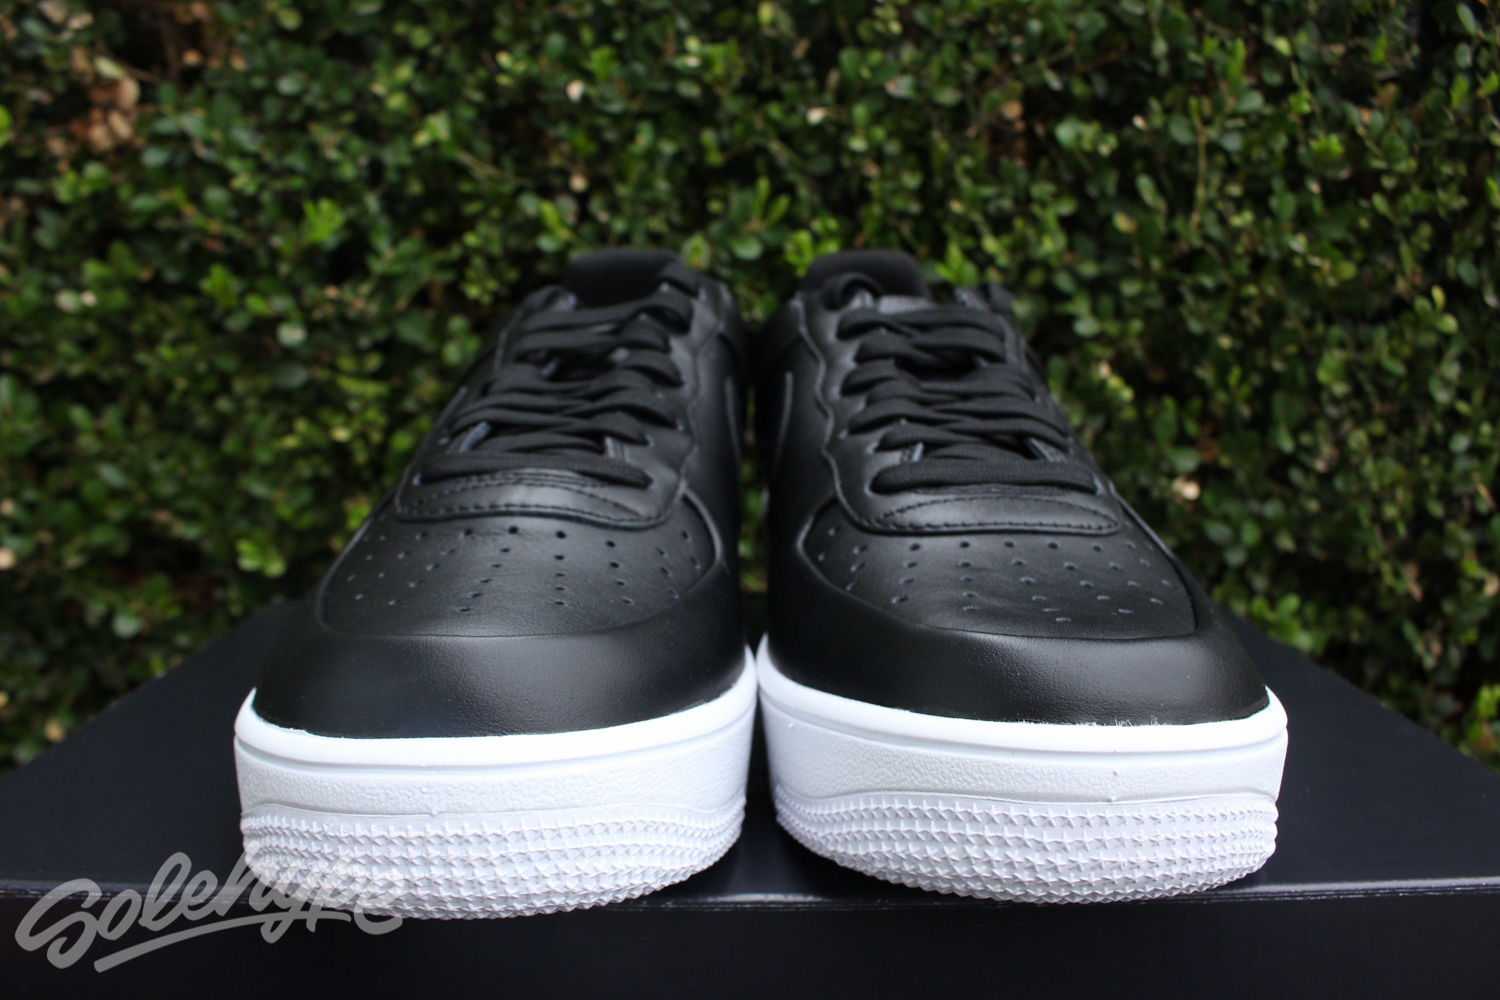 NIKE AIR FORCE 1 ULTRAFORCE LEATHER SZ 9.5 LOW BLACK WHITE 845052 001